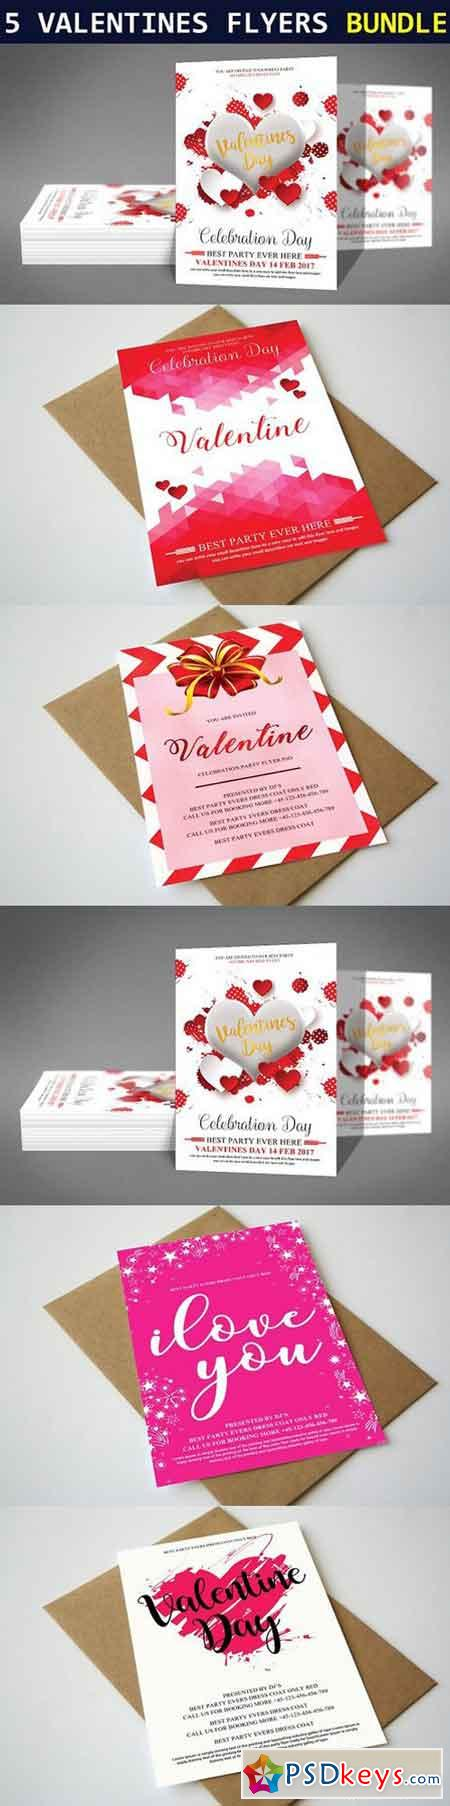 5 Valentines Day Flyers Bundle 1221642